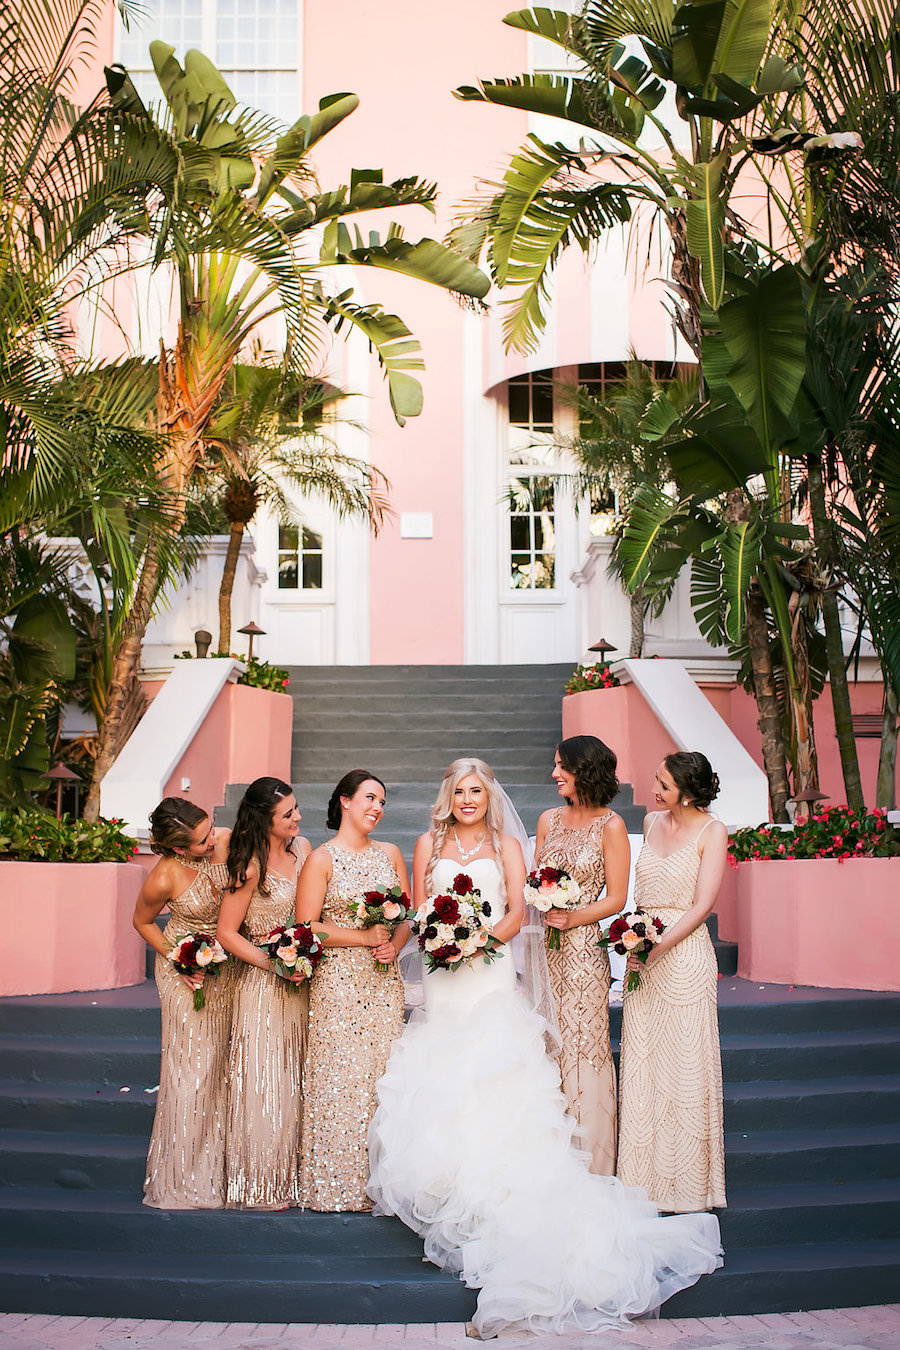 Florida Bridal Wedding Party Portrait at Don CeSar Hotel in St. Pete Beach   Ivory Strapless Drop Waist Pronovias Wedding Dress and Champagne, Gold Bridesmaids Dresses   Pronovias Wedding Dress   Tampa Wedding Photographer Limelight Photography